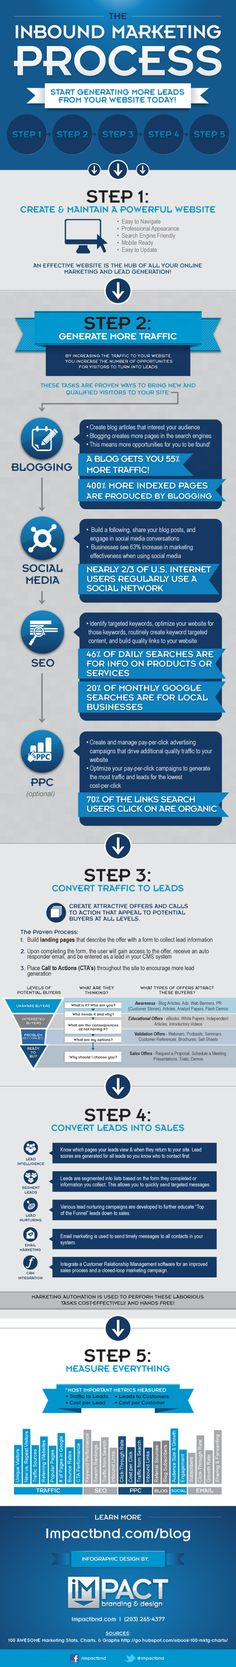 Awesome infographic - How Inbound Marketing Works, From Start to Finish [INFOGRAPHIC]